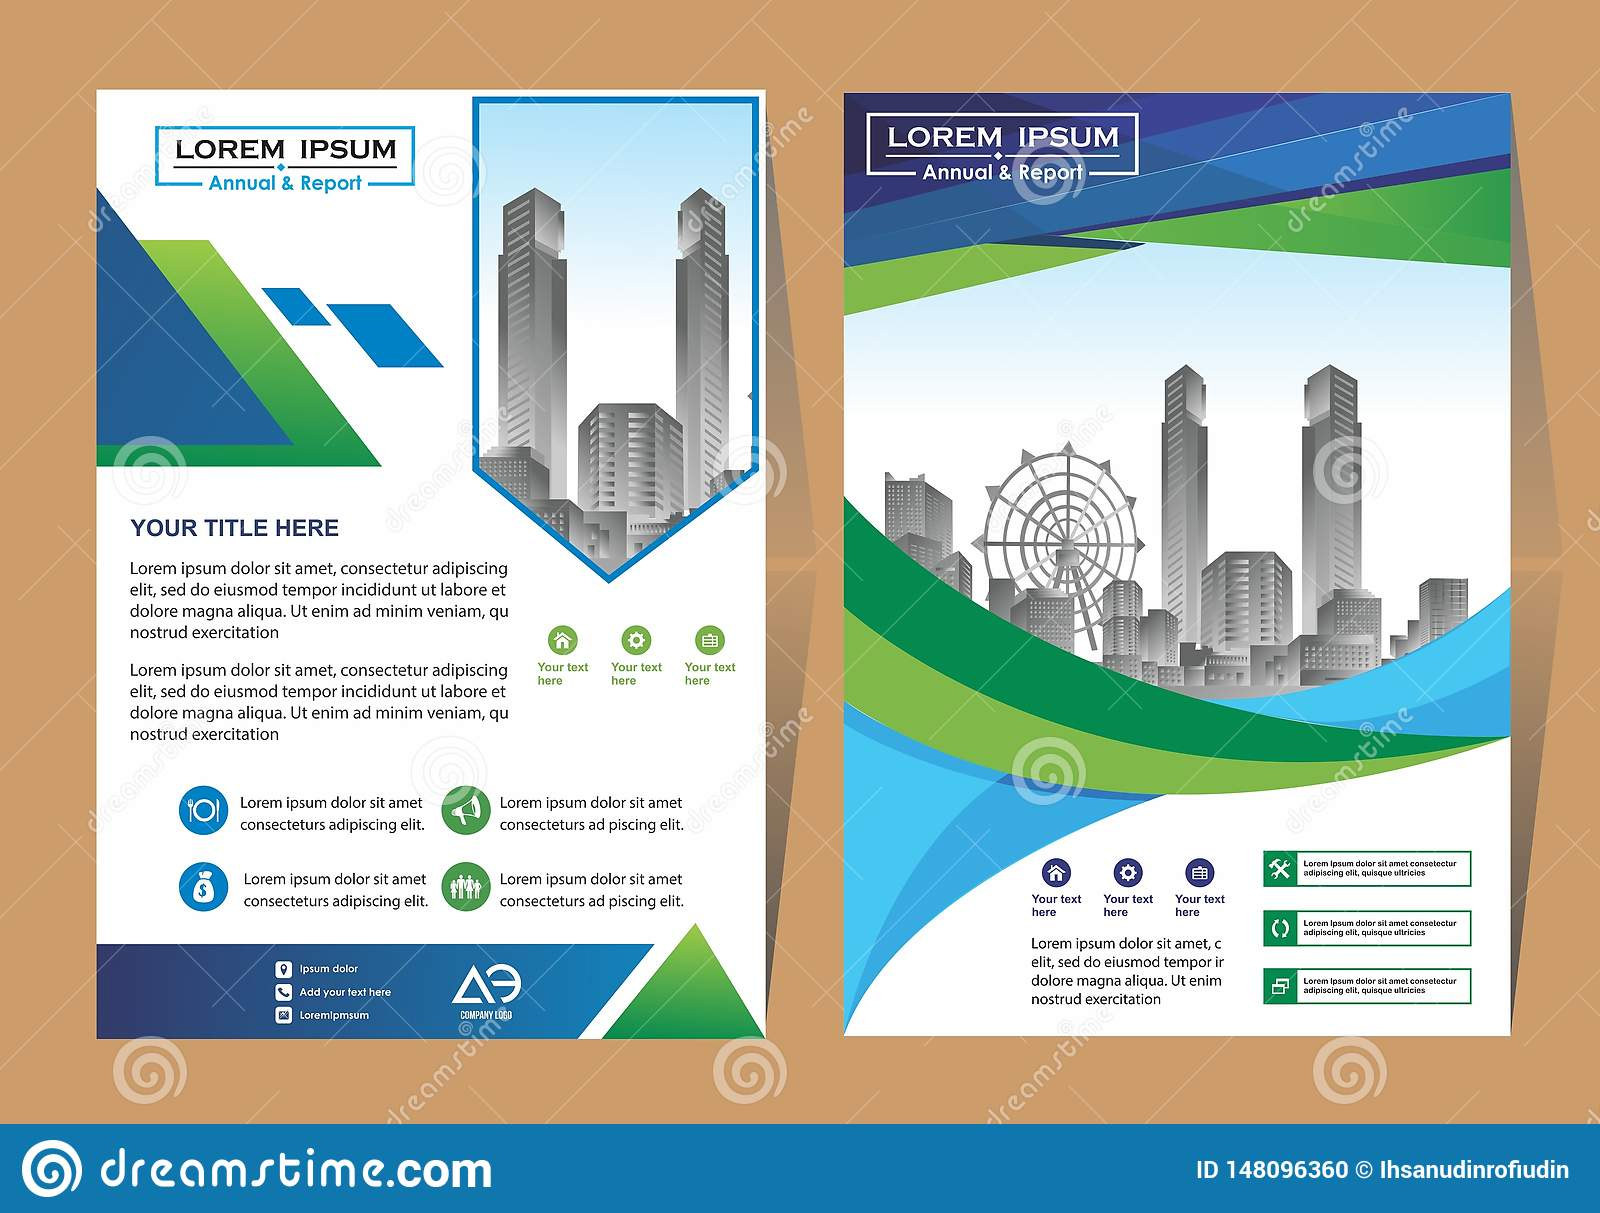 Vector Business brochure, flyers design template, company profile, magazine, poster, annual report, book & booklet cover, with gre